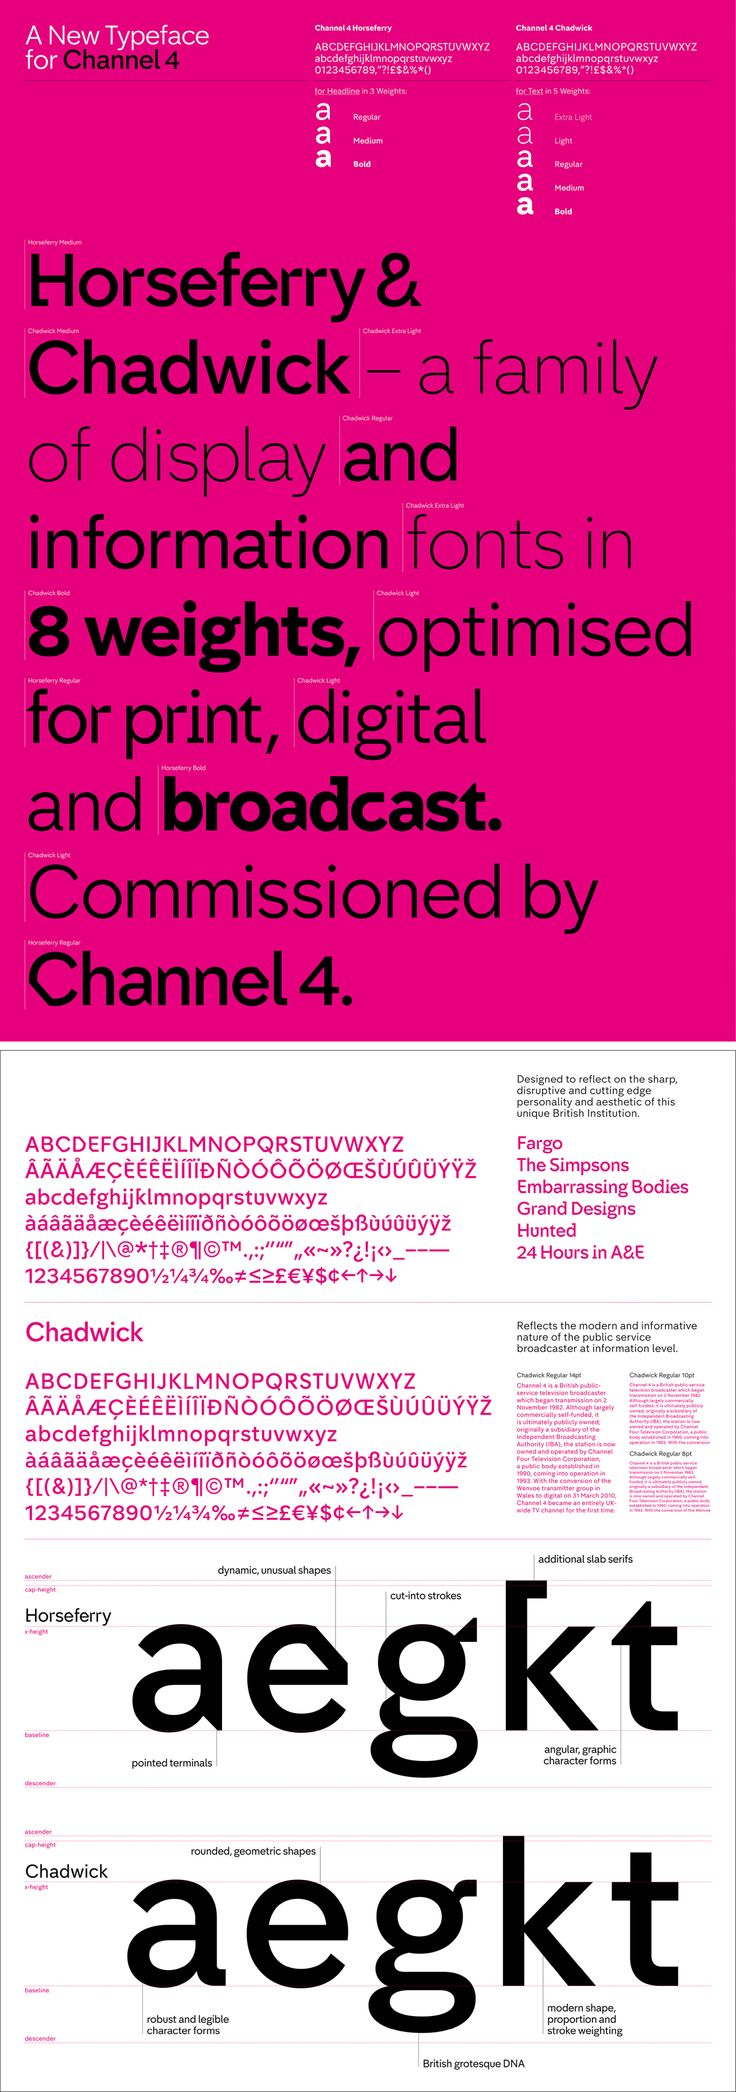 Channel 4's new fonts